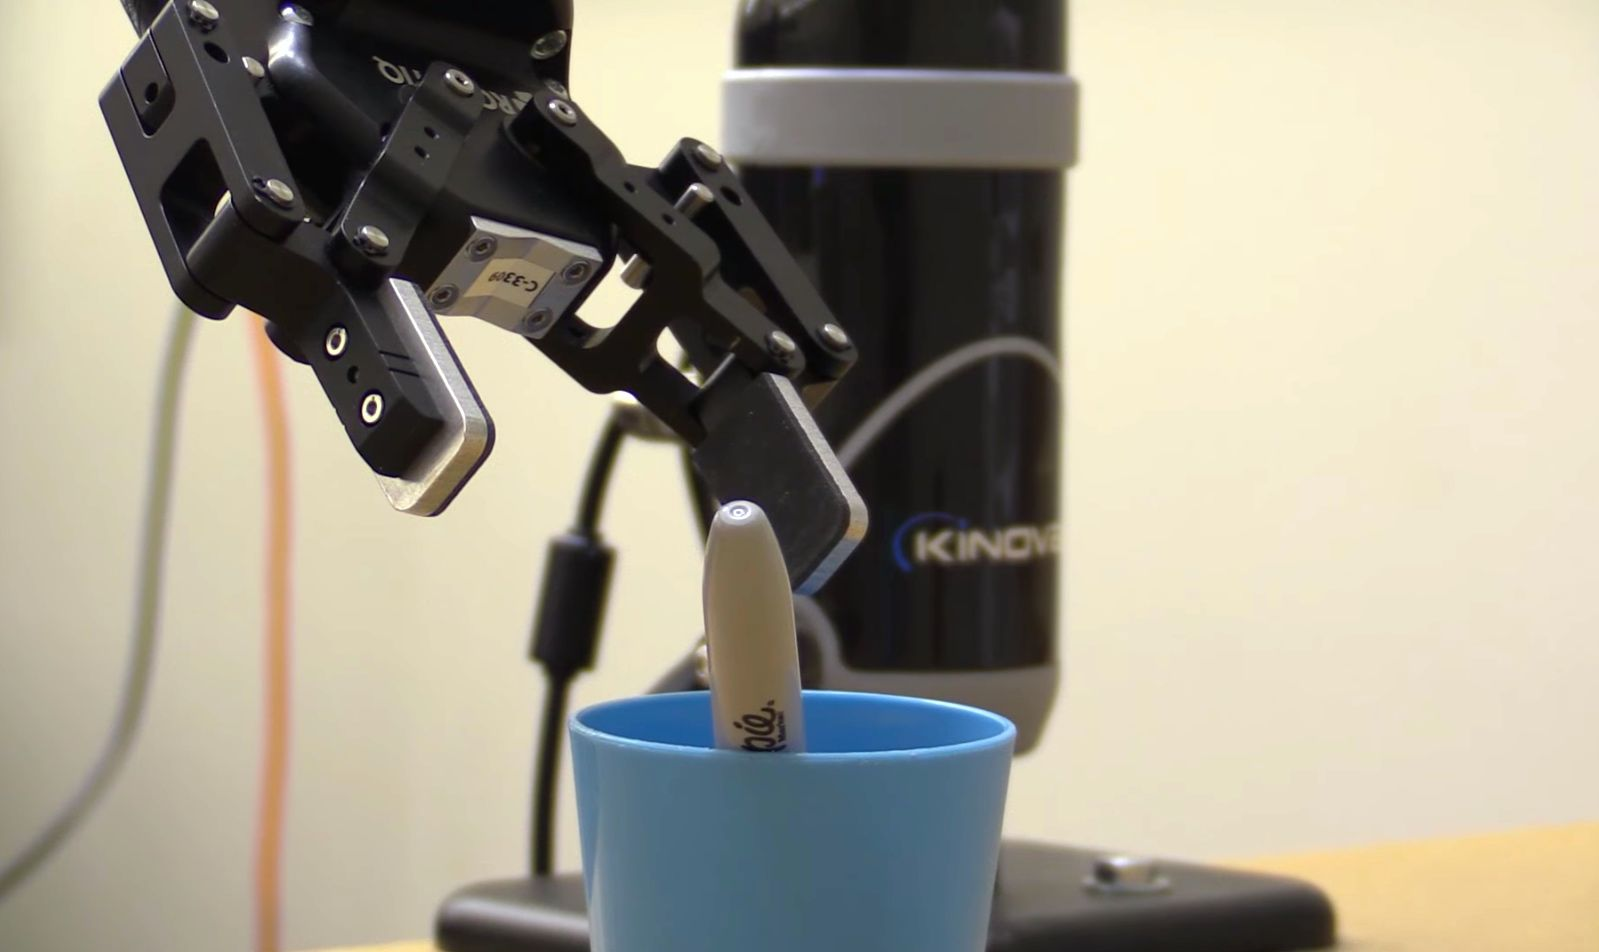 Georgia Tech researchers developed a novel point-and-click robot grasping system